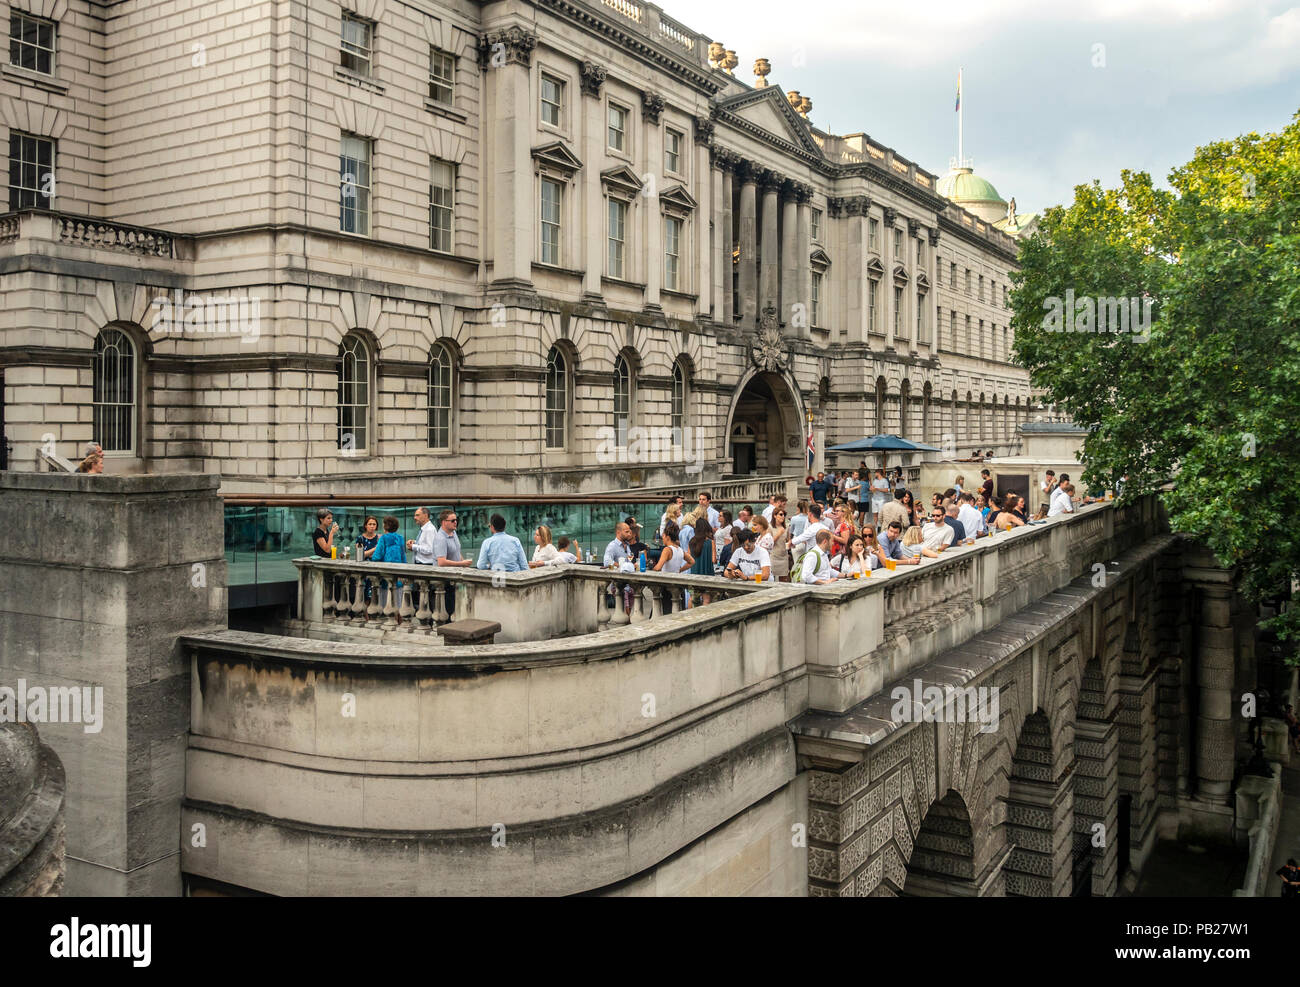 A function wit people relaxing and having a drink on the busy terrace outside Somerset House, a Grade 1 Listed Building in London, England, UK. Stock Photo